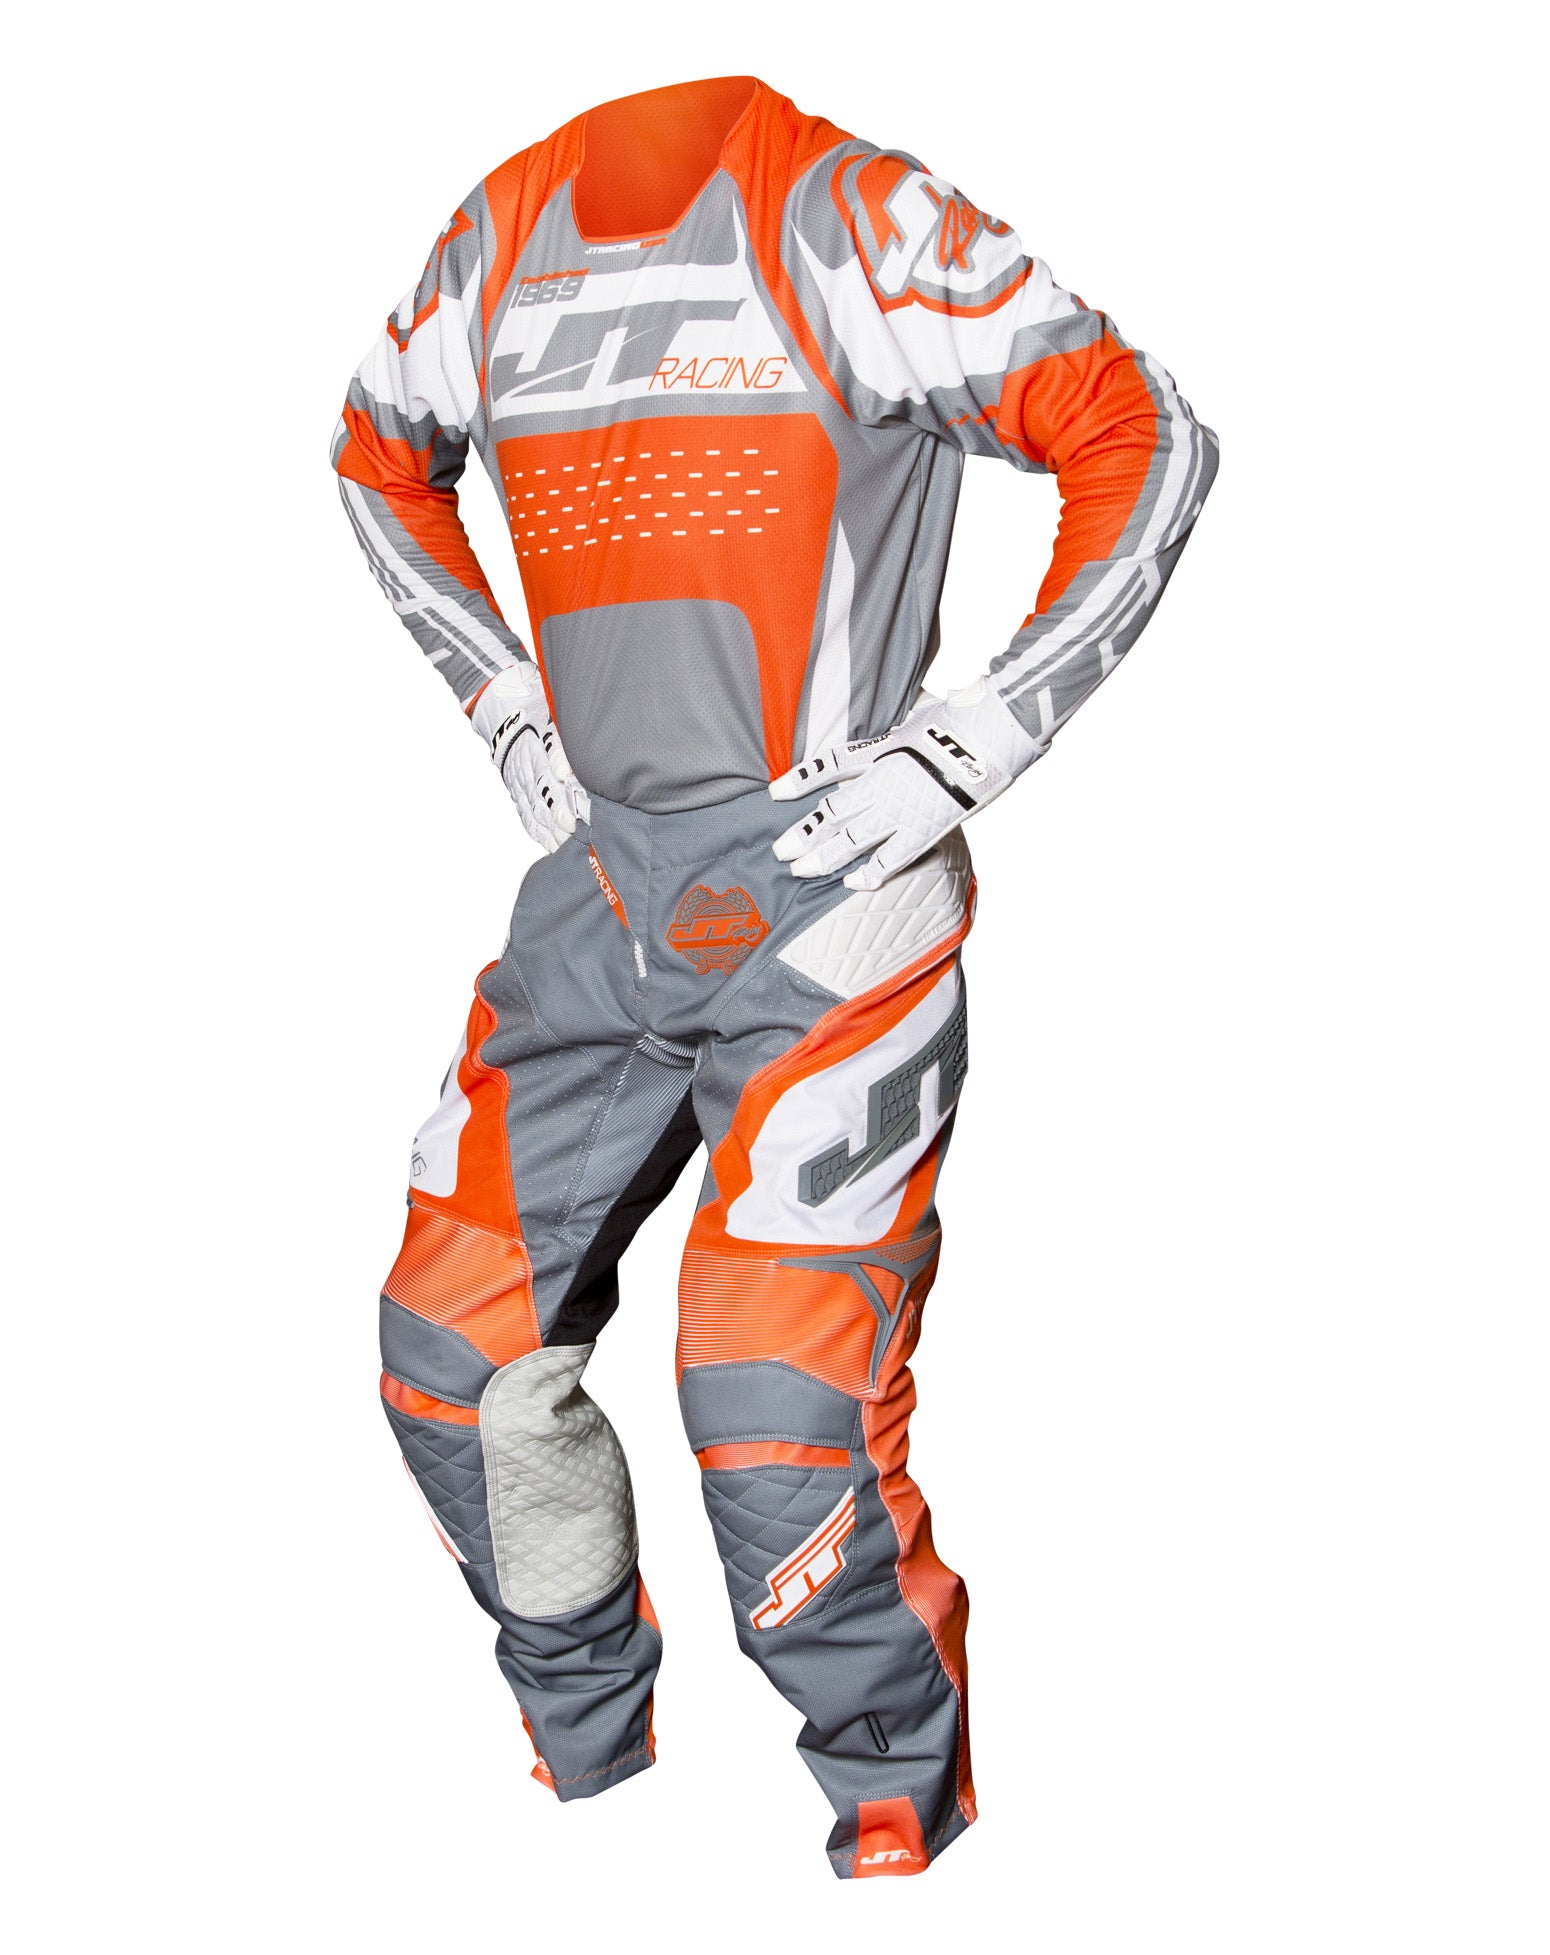 JT RACING USA ProTek Trophy pants, Grey/Orange/White